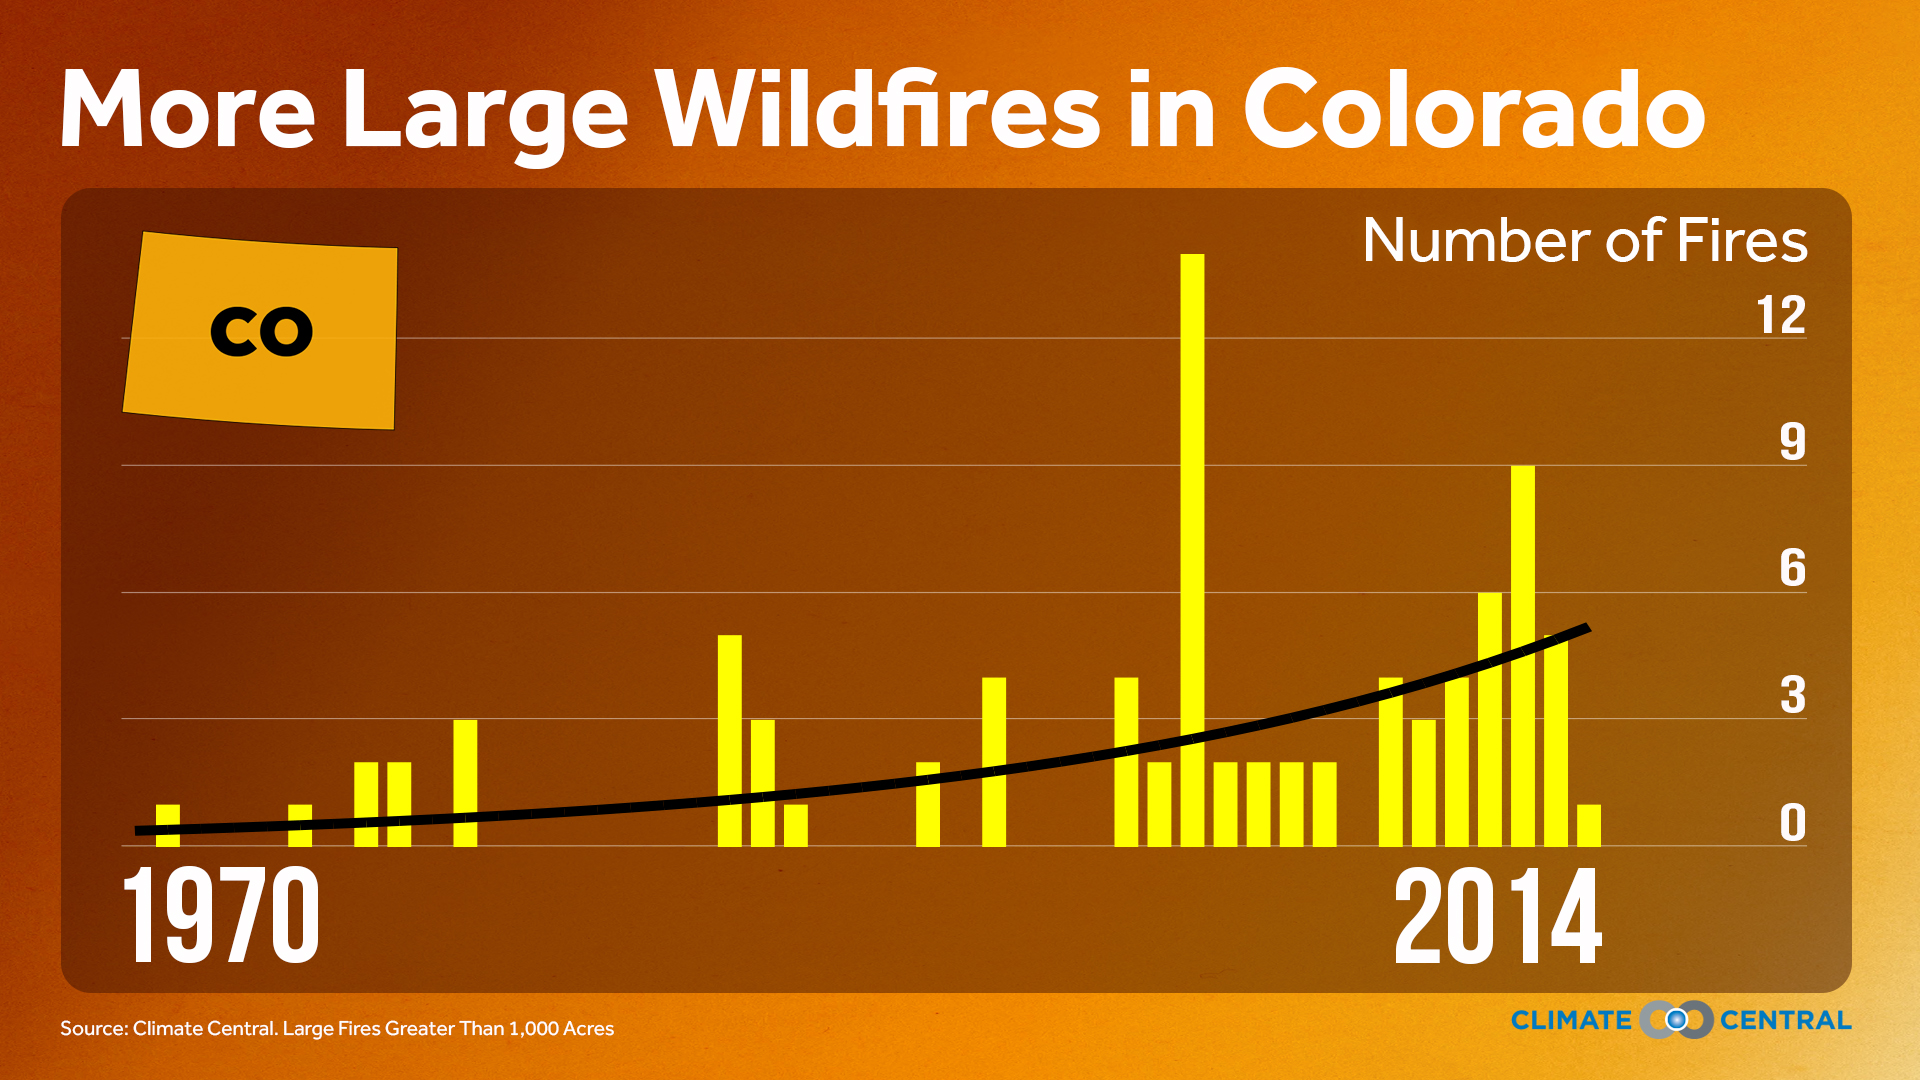 Wildfire trends in Colorado